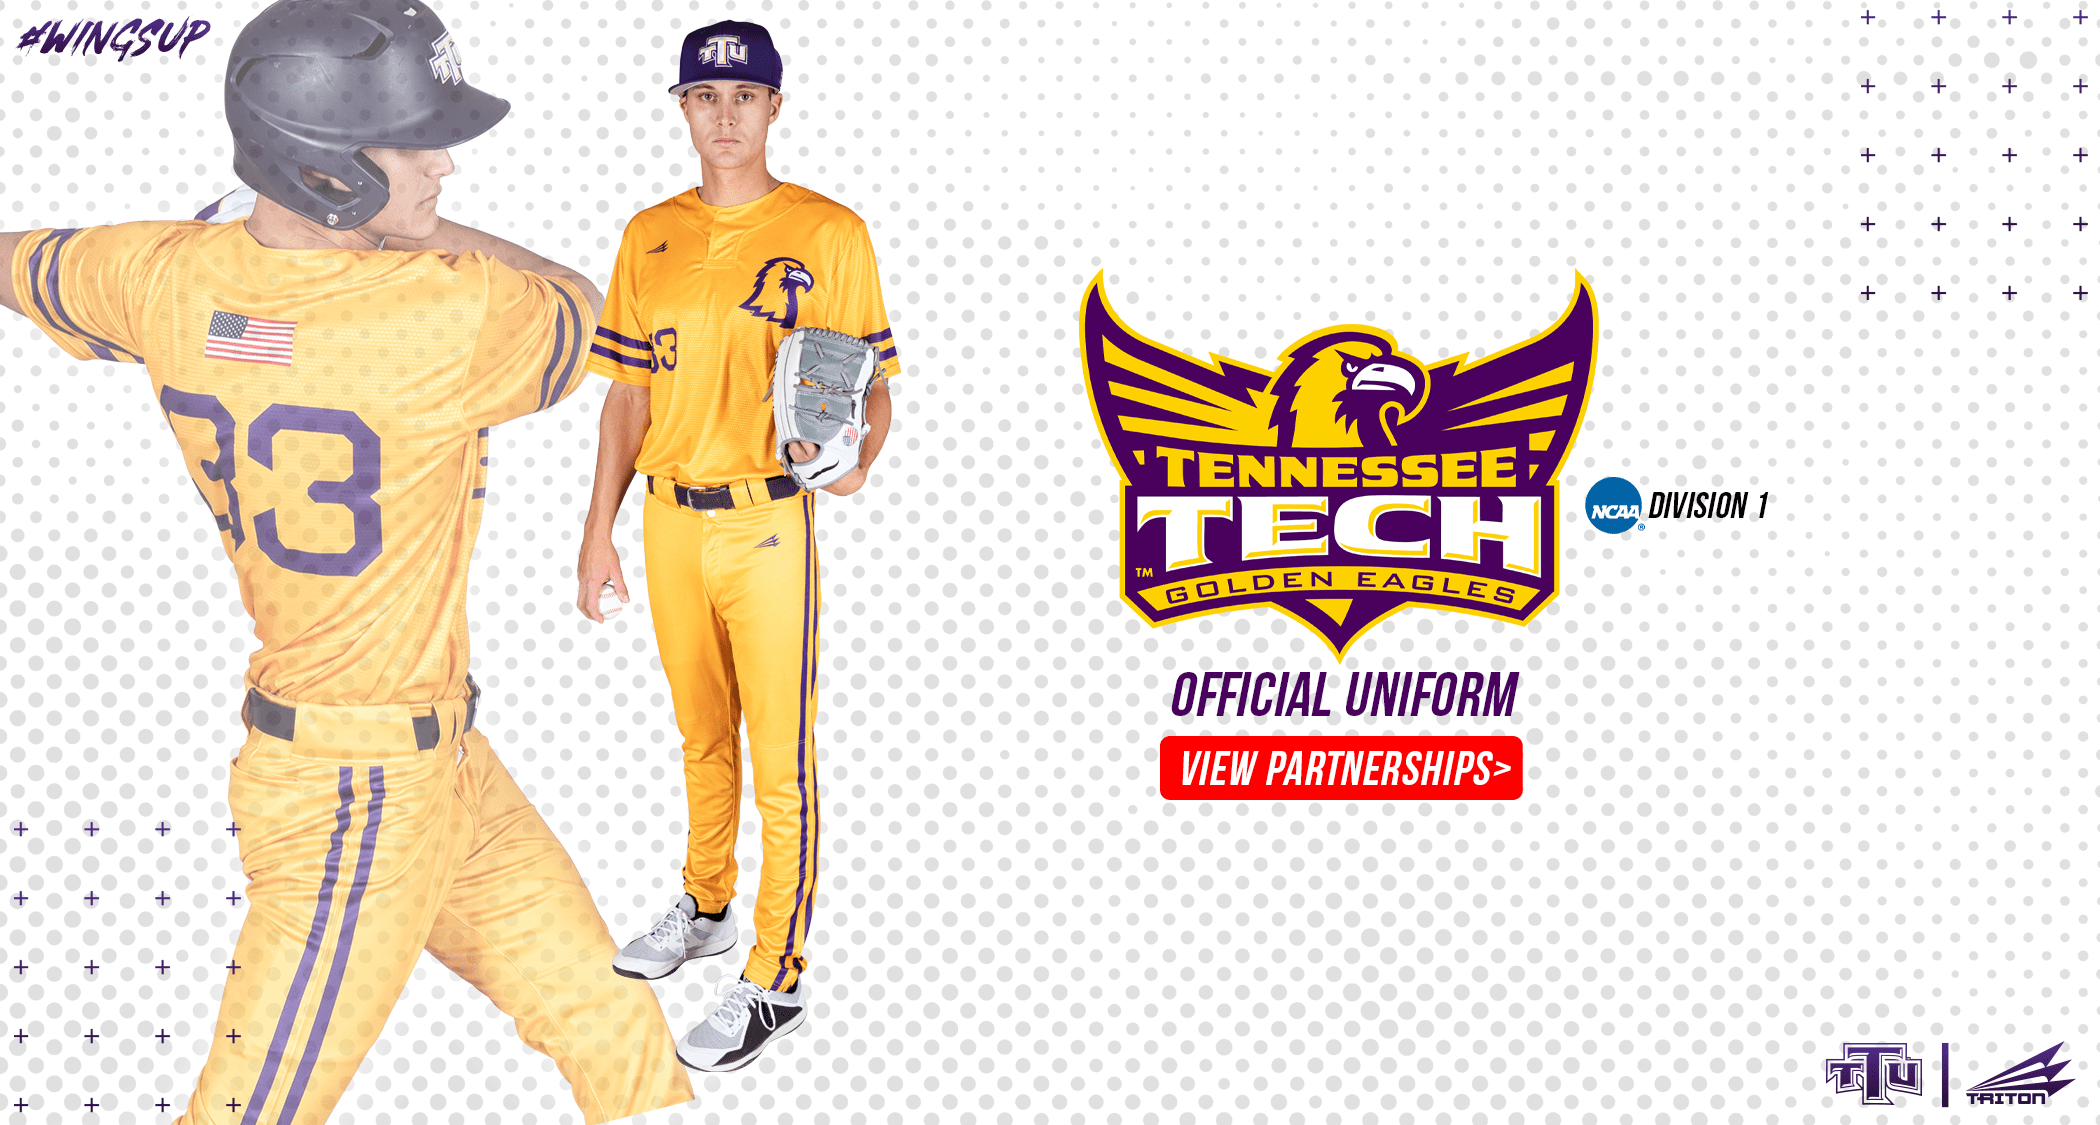 Triton and Tennessee Tech Baseball